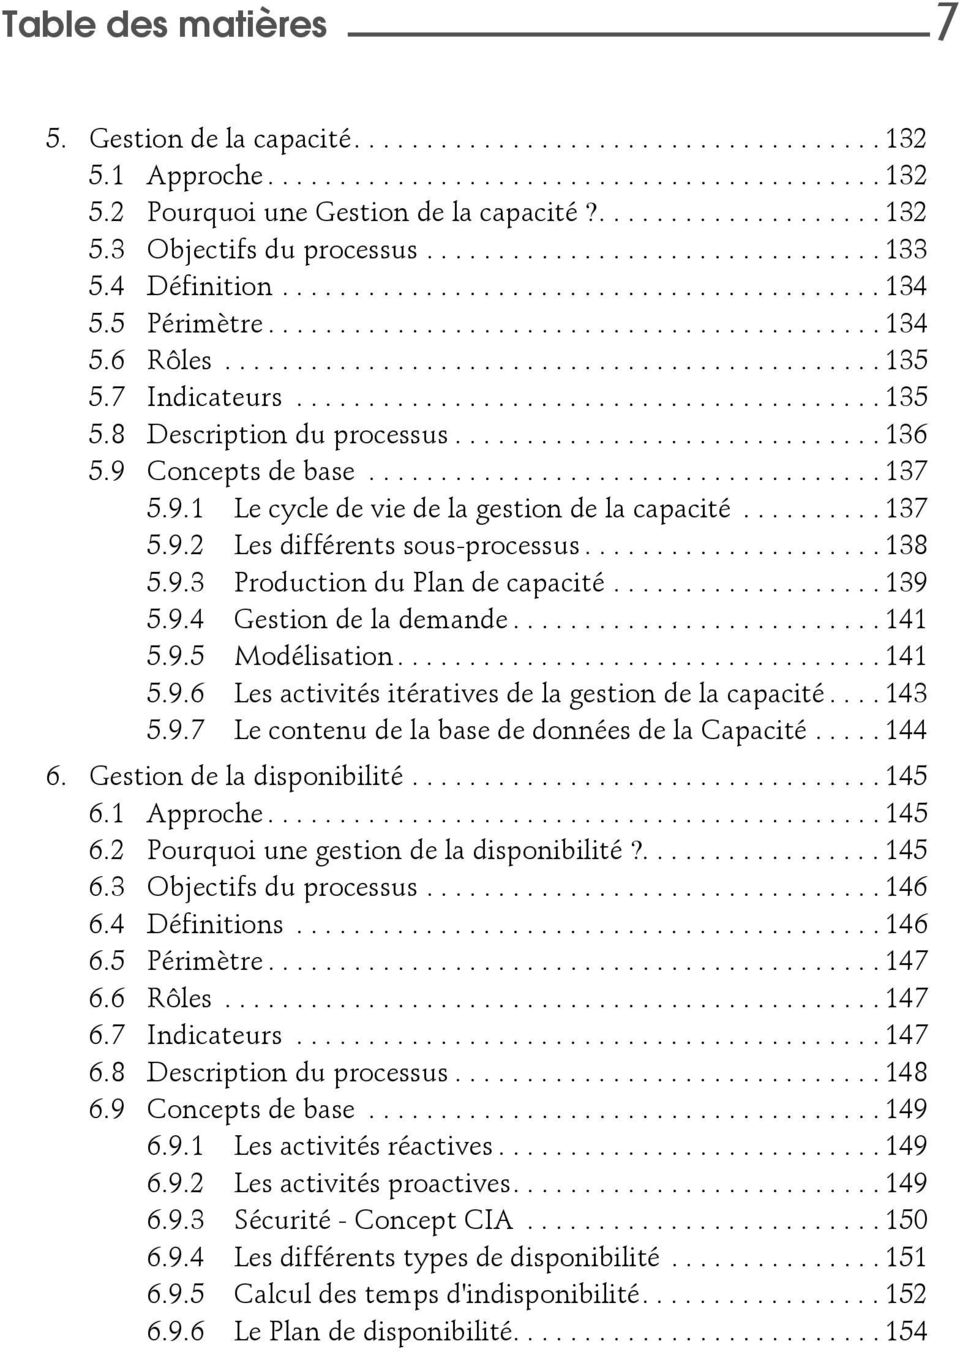 7 Indicateurs......................................... 135 5.8 Description du processus.............................. 136 5.9 Concepts de base.................................... 137 5.9.1 Le cycle de vie de la gestion de la capacité.